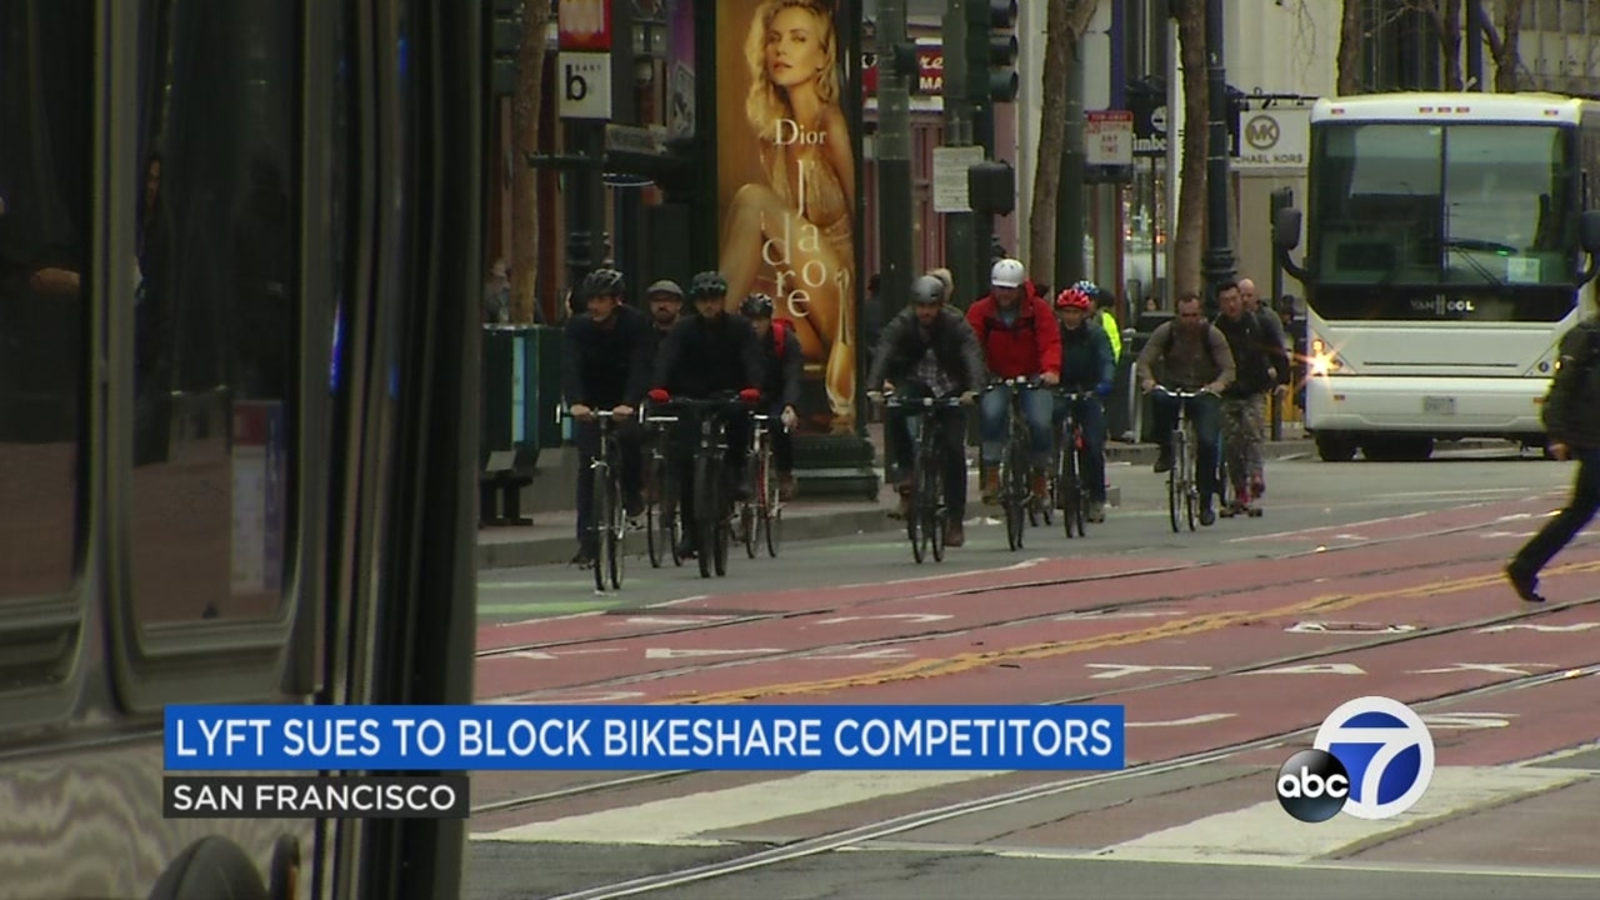 Lyft sues San Francisco to block bikeshare competitors from getting permits